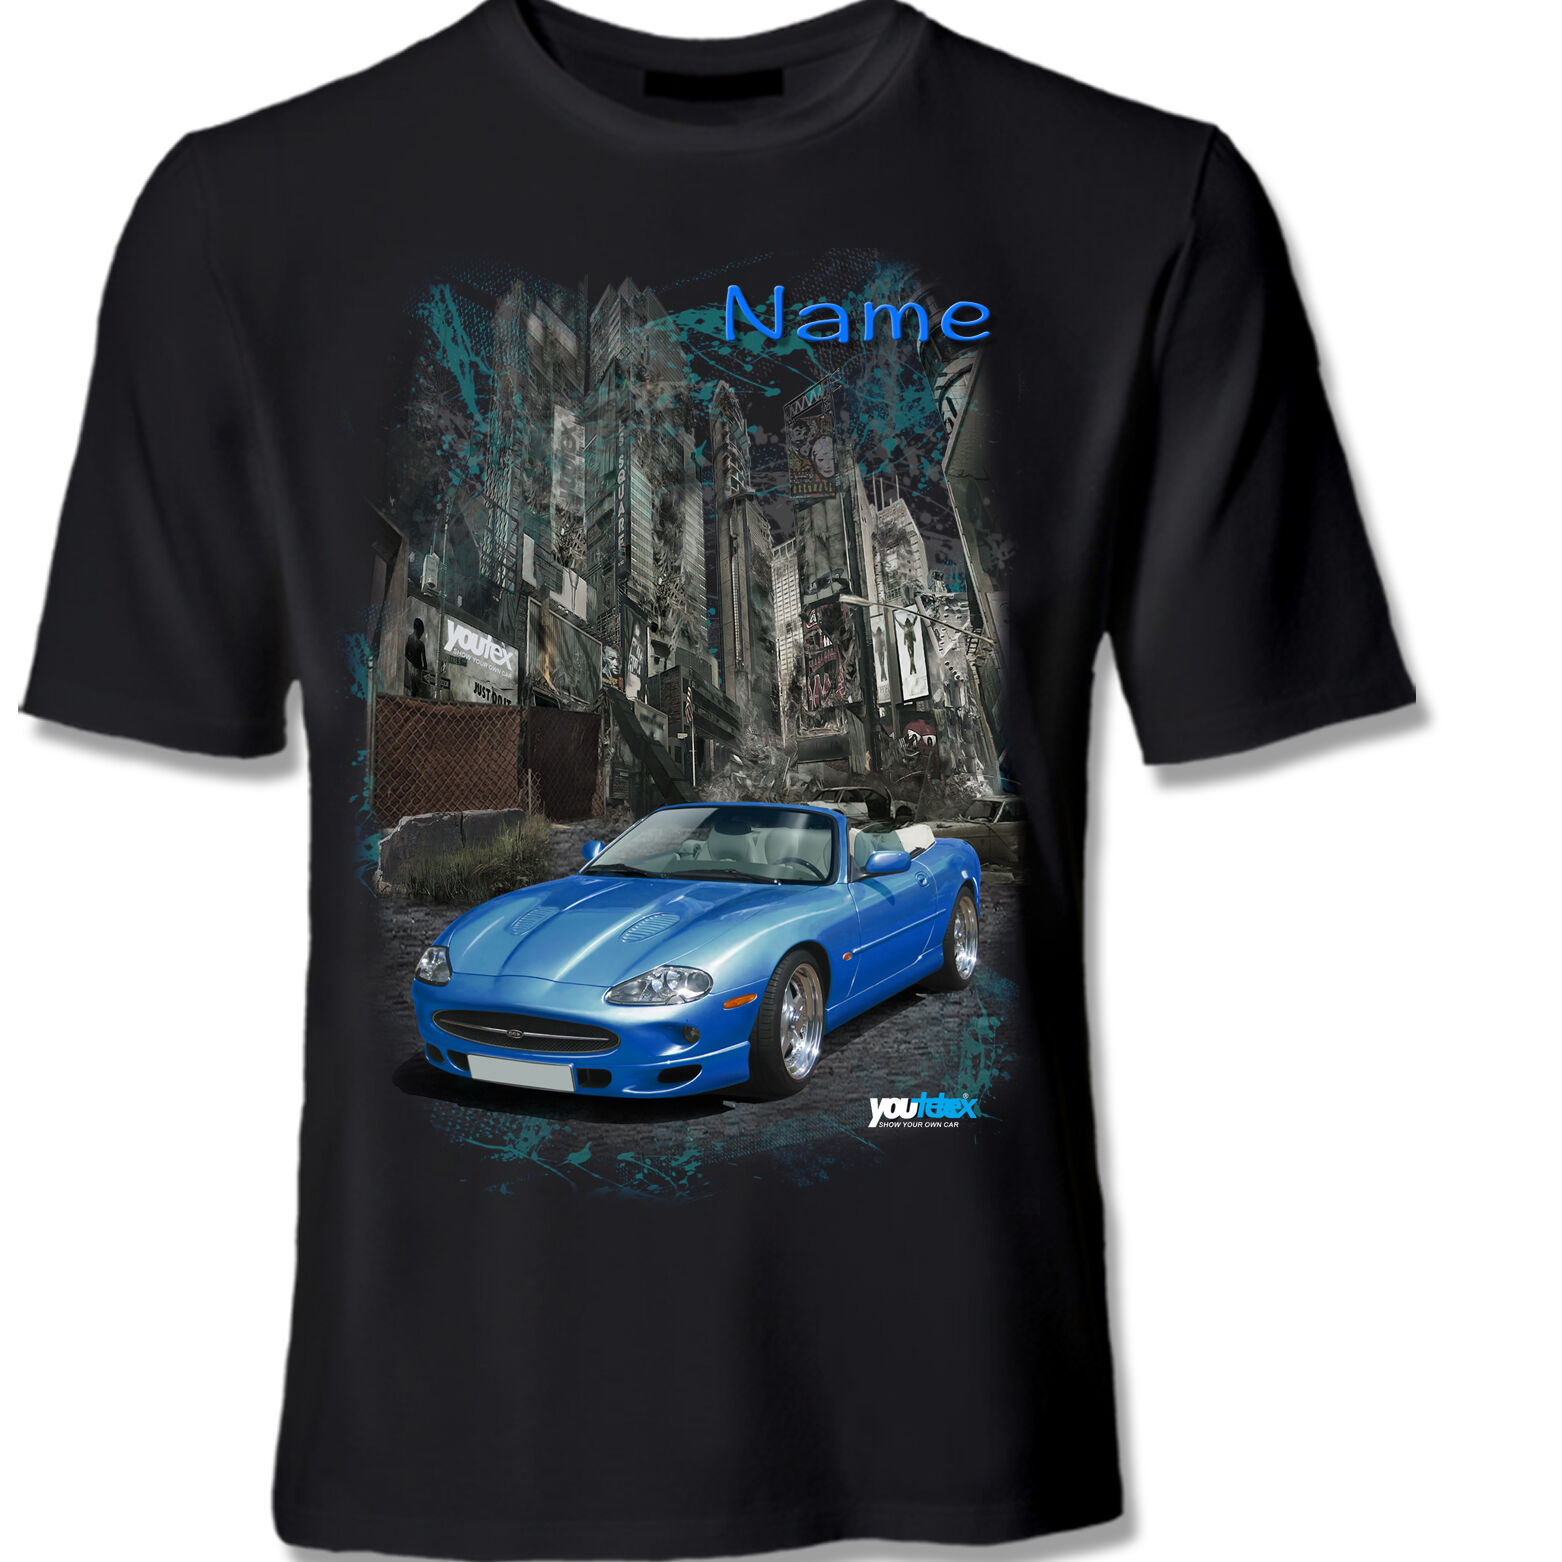 JAGUAR XK SHIRT 8 CABRIO ORIGINALE youtex T SHIRT XK o cuscini 96f103